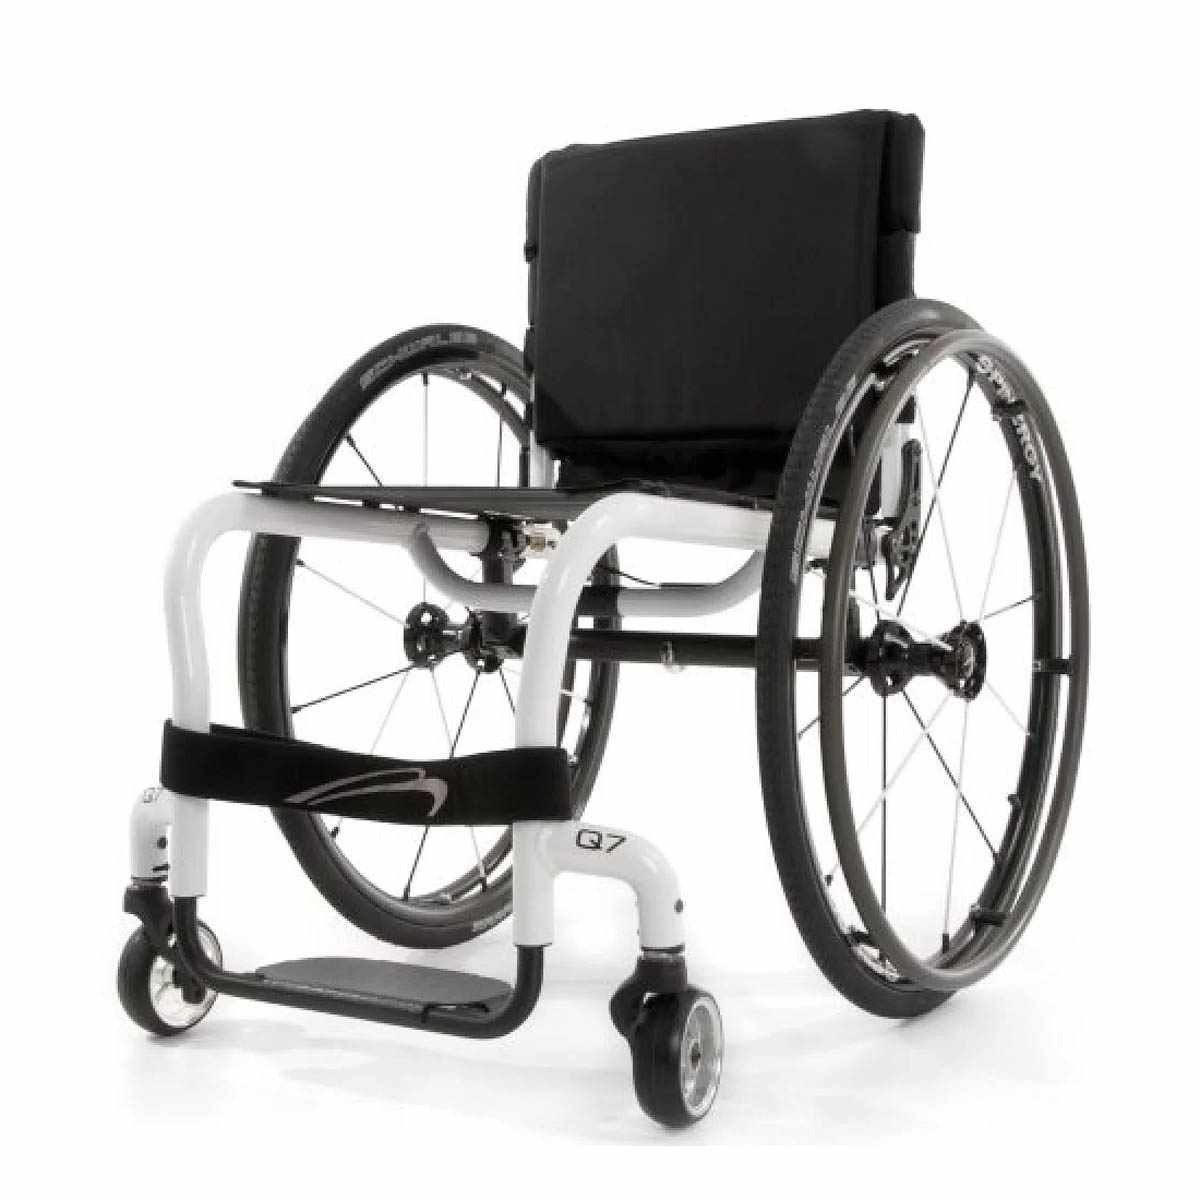 Quickie Q7 NextGEN ultralight rigid manual wheelchair